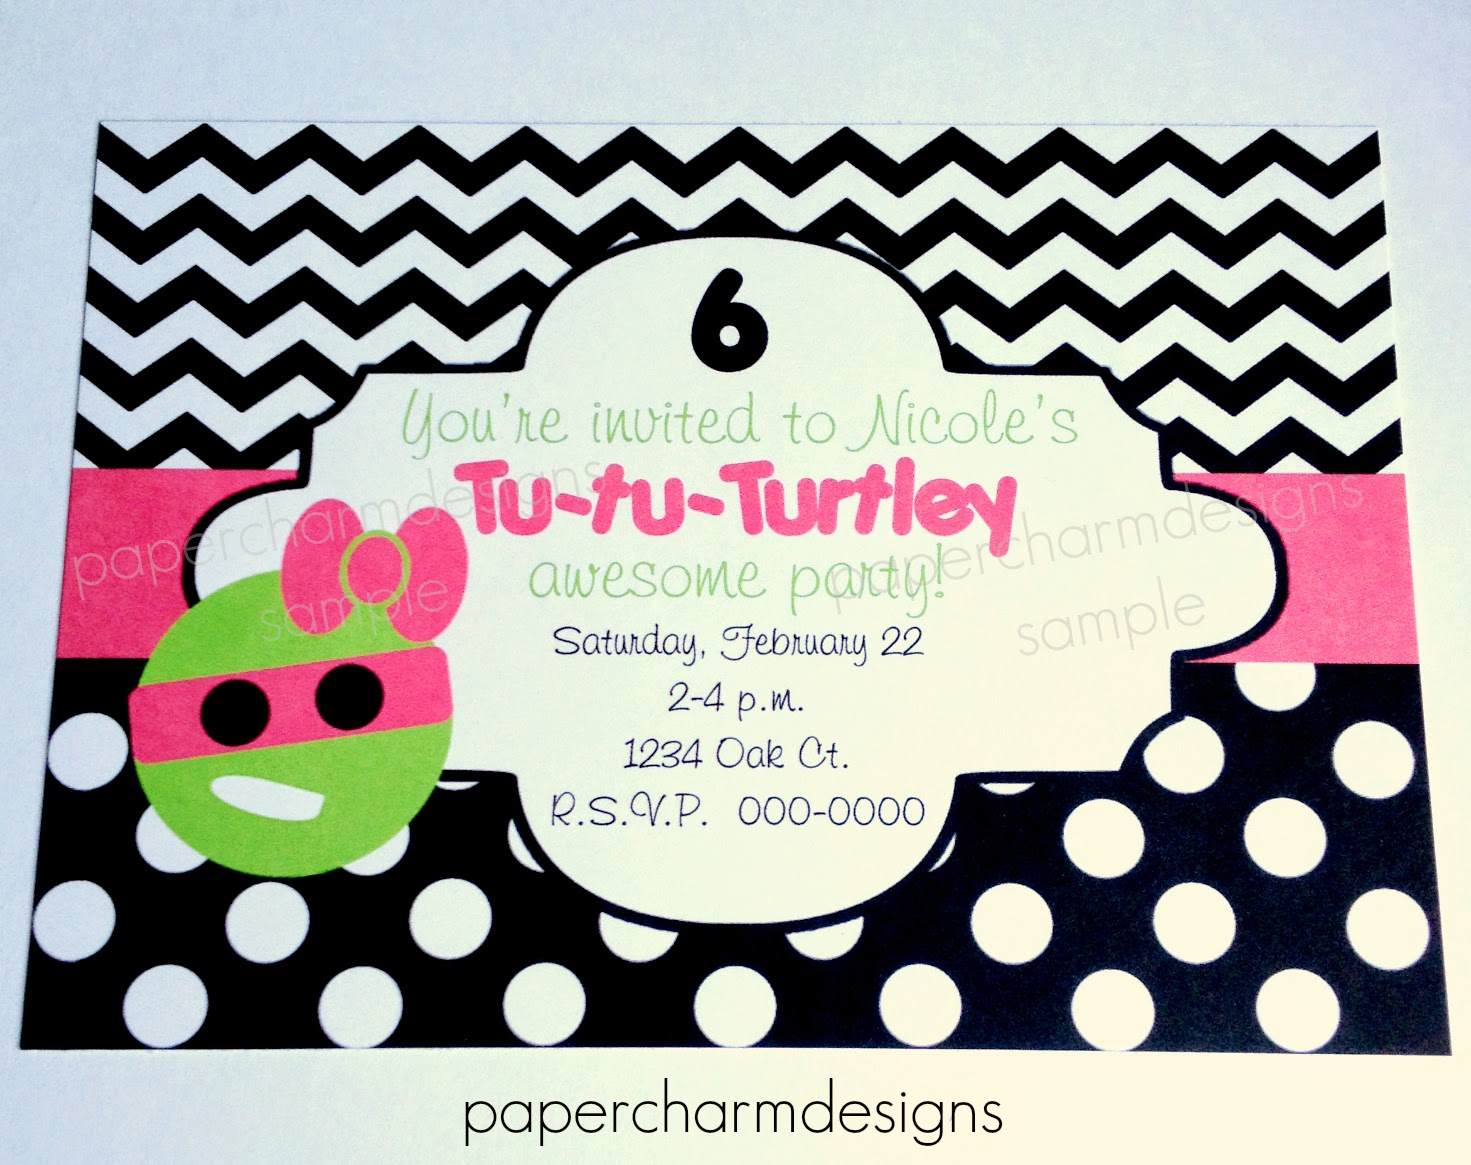 Papercharm Girls Tutus And Turtle Ninja Party Theme